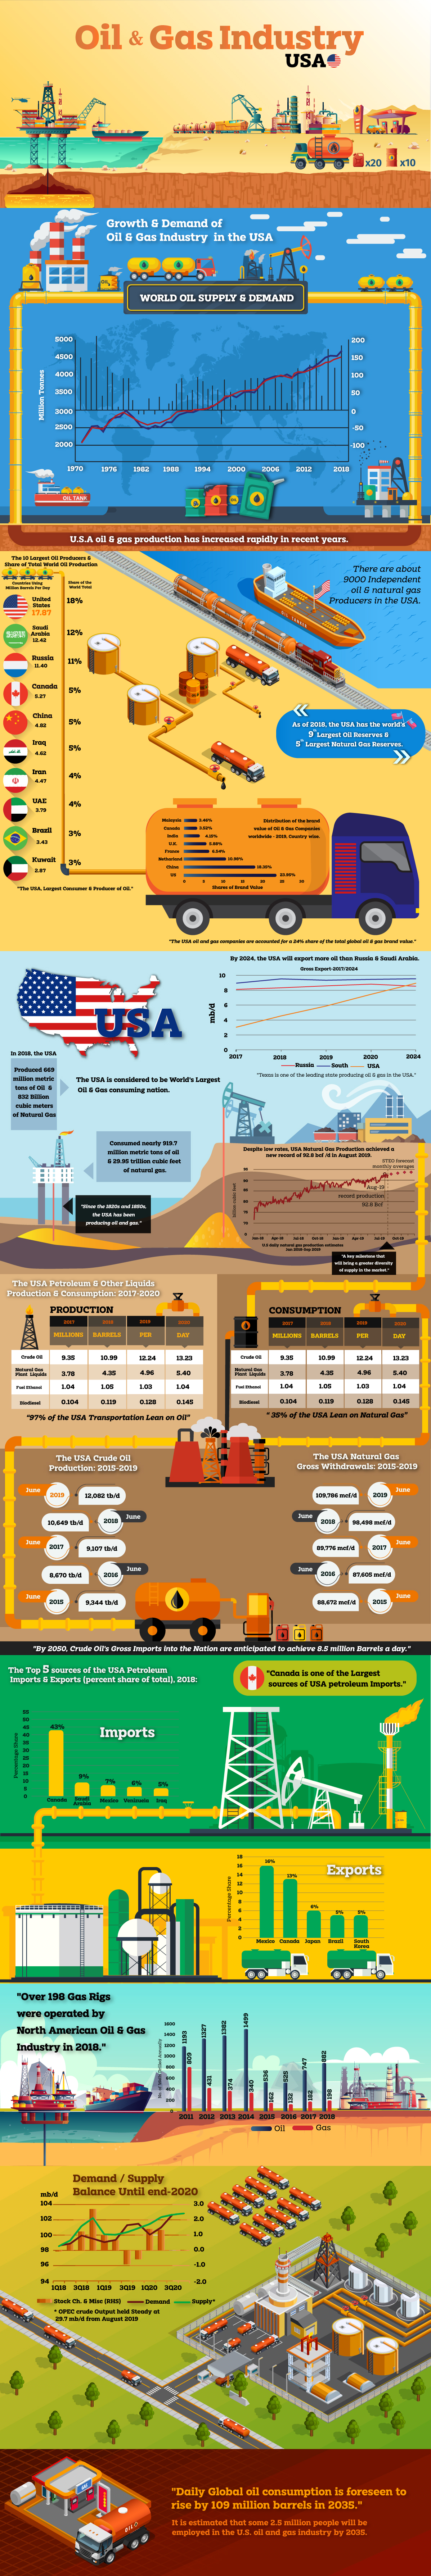 Growth - Demand of Oil & Gas Industry in the USA